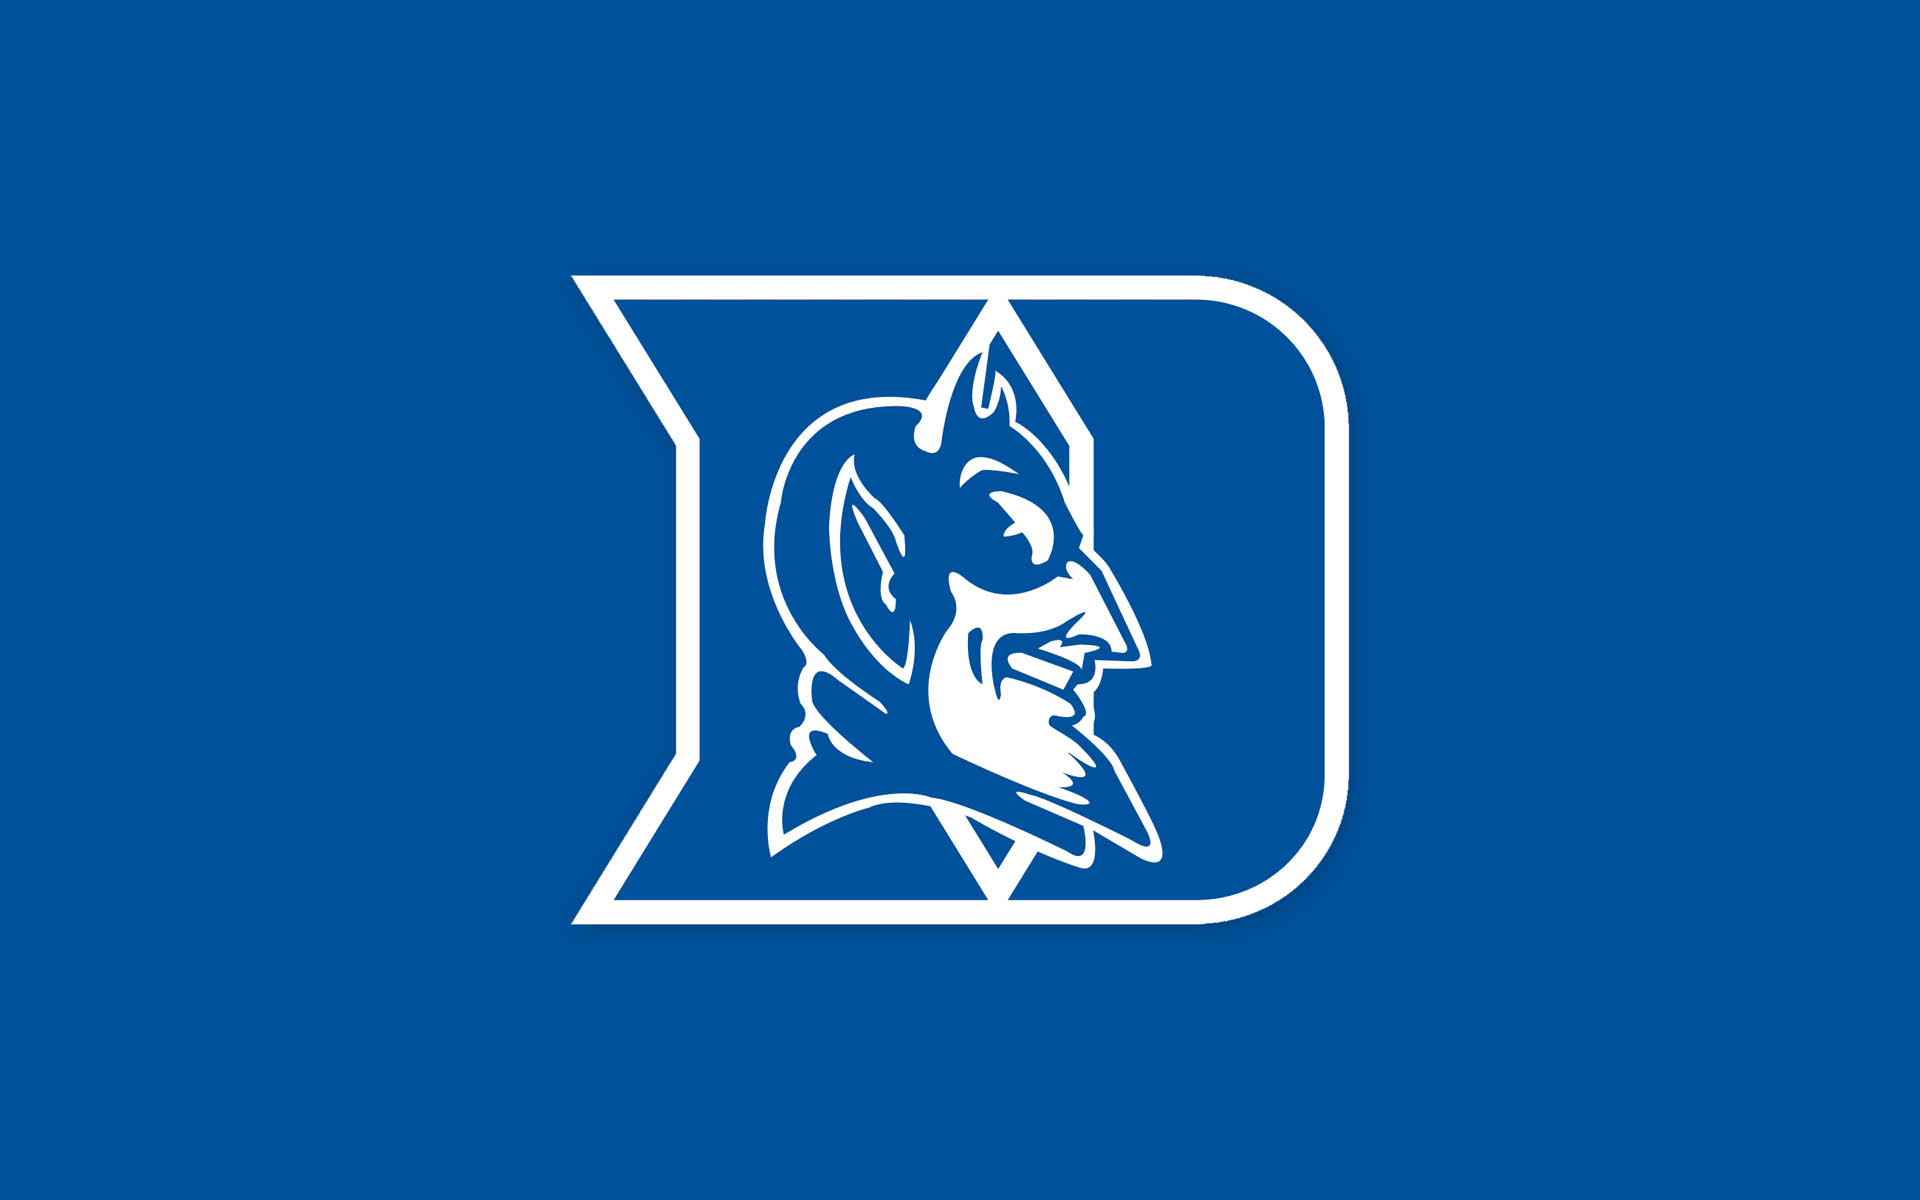 Duke Logo Wallpaper - WallpaperSafari